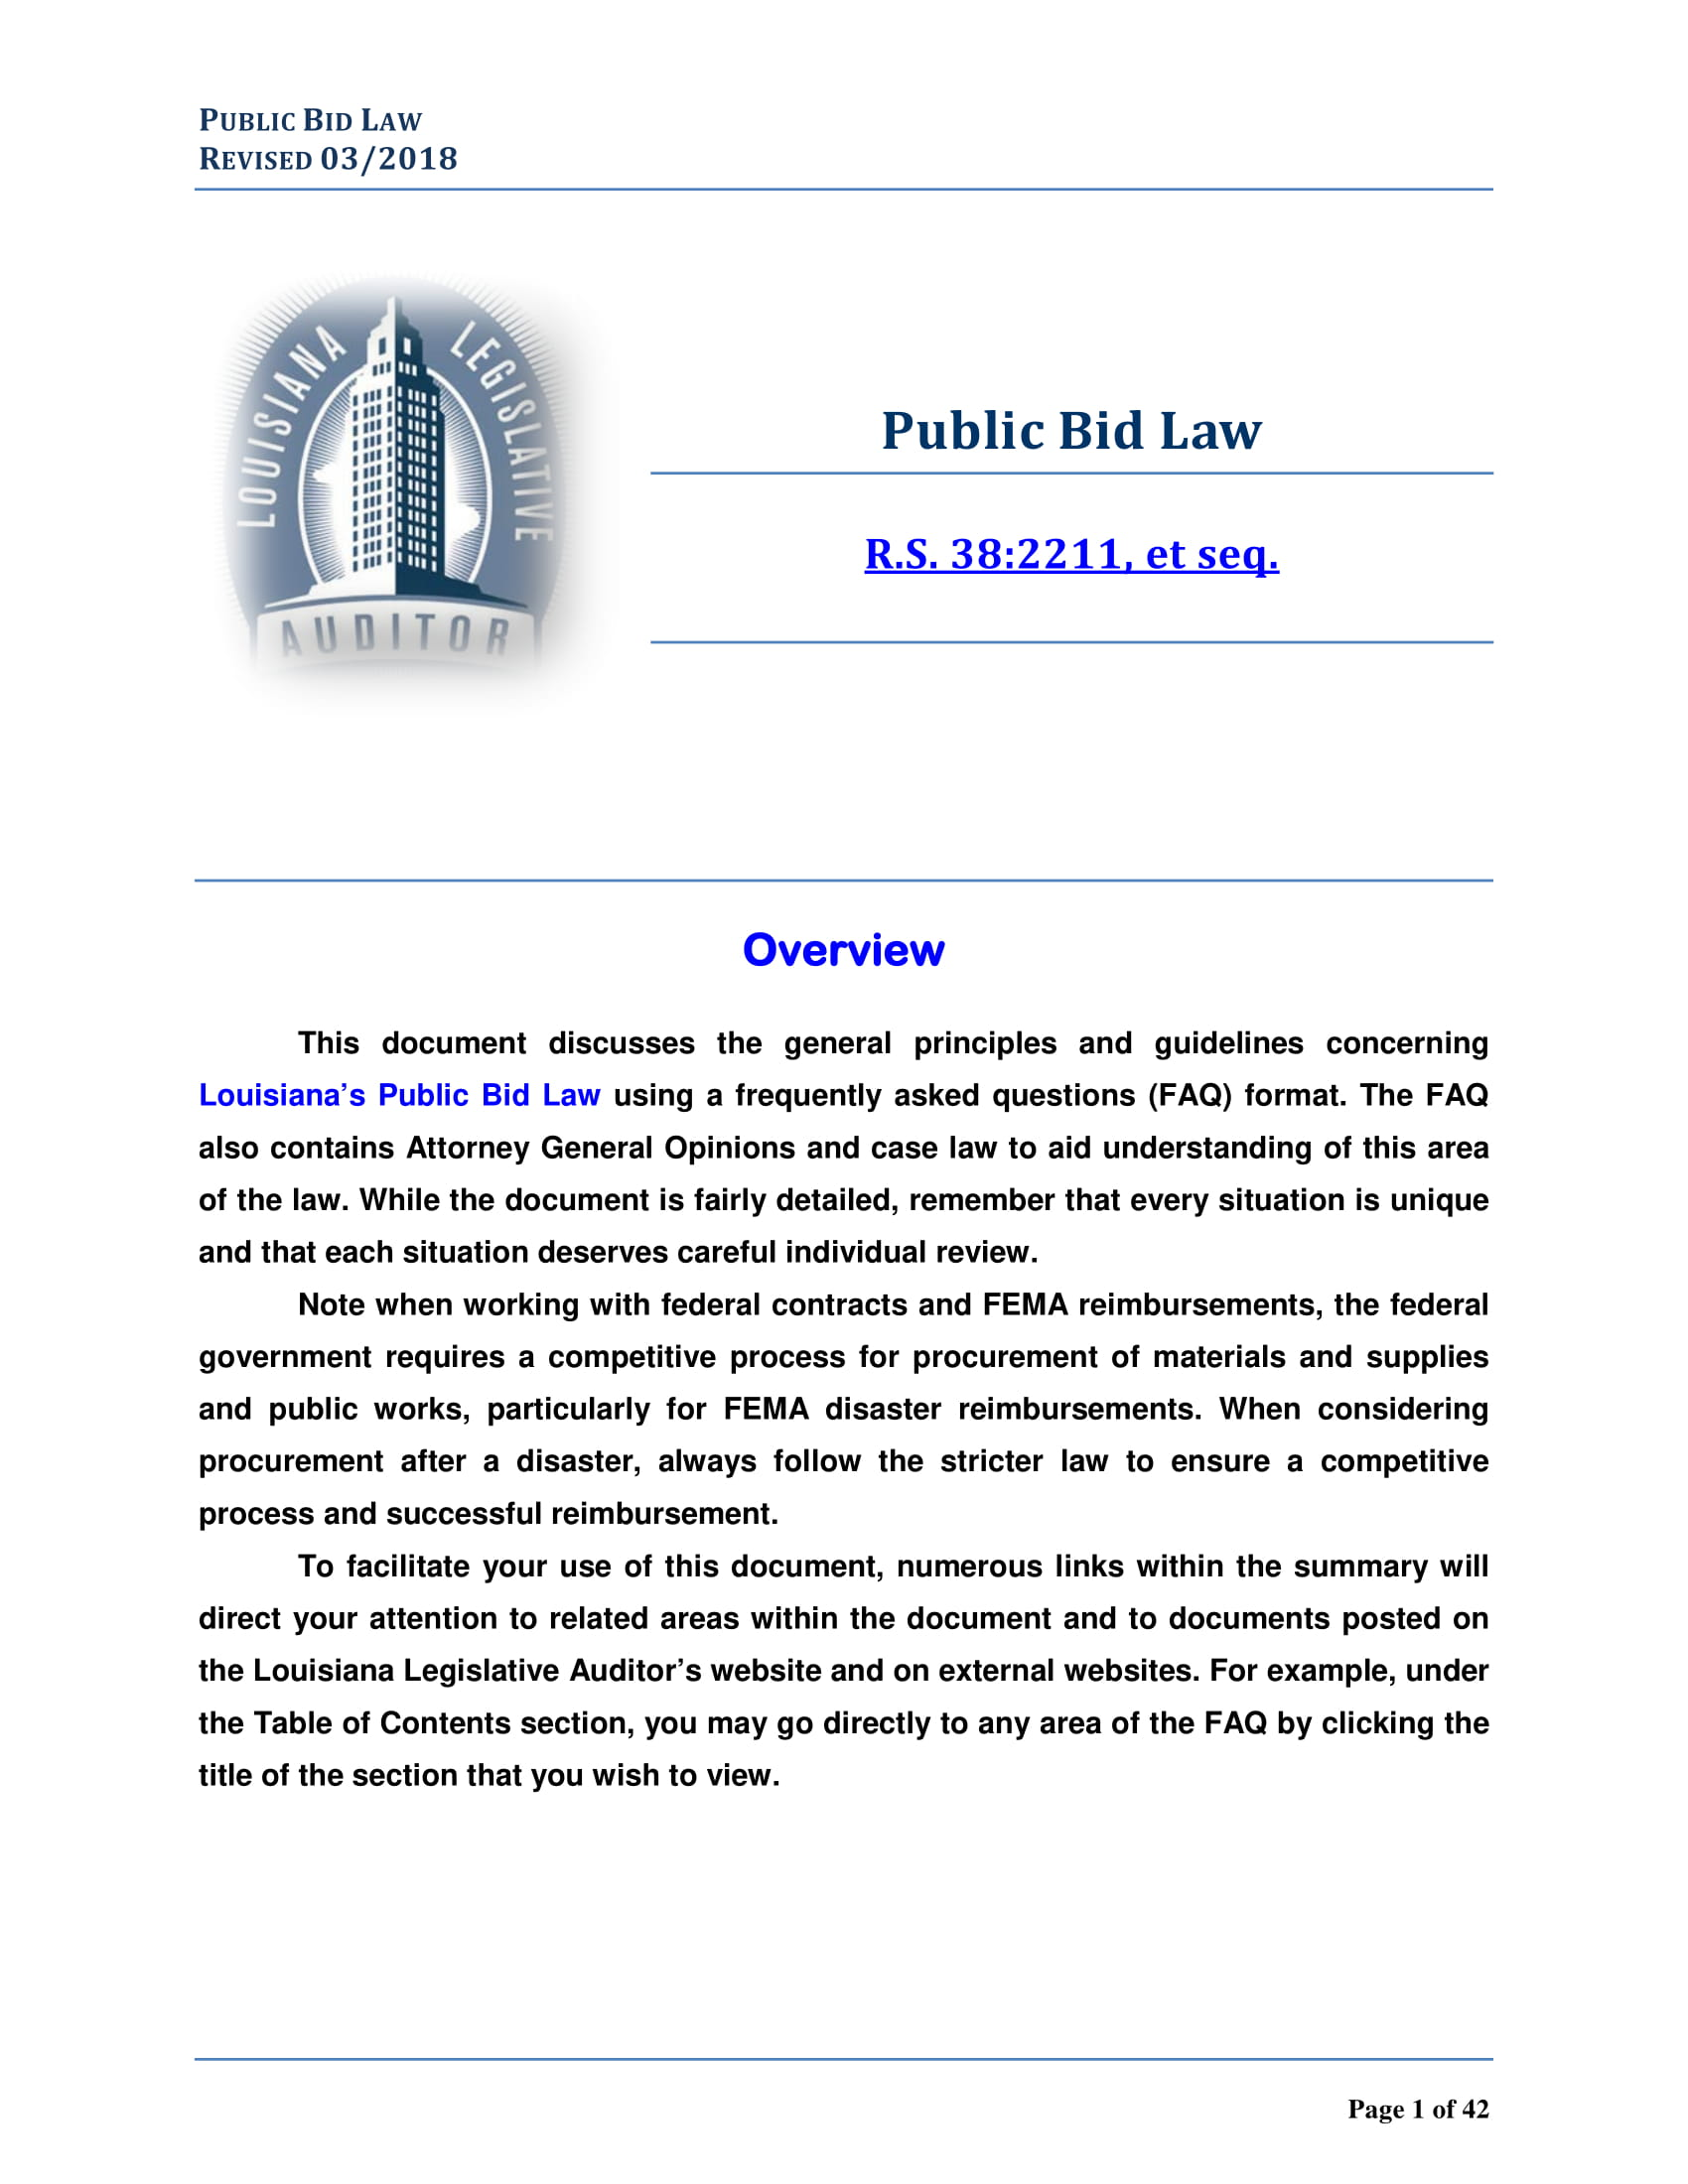 public bid law faq